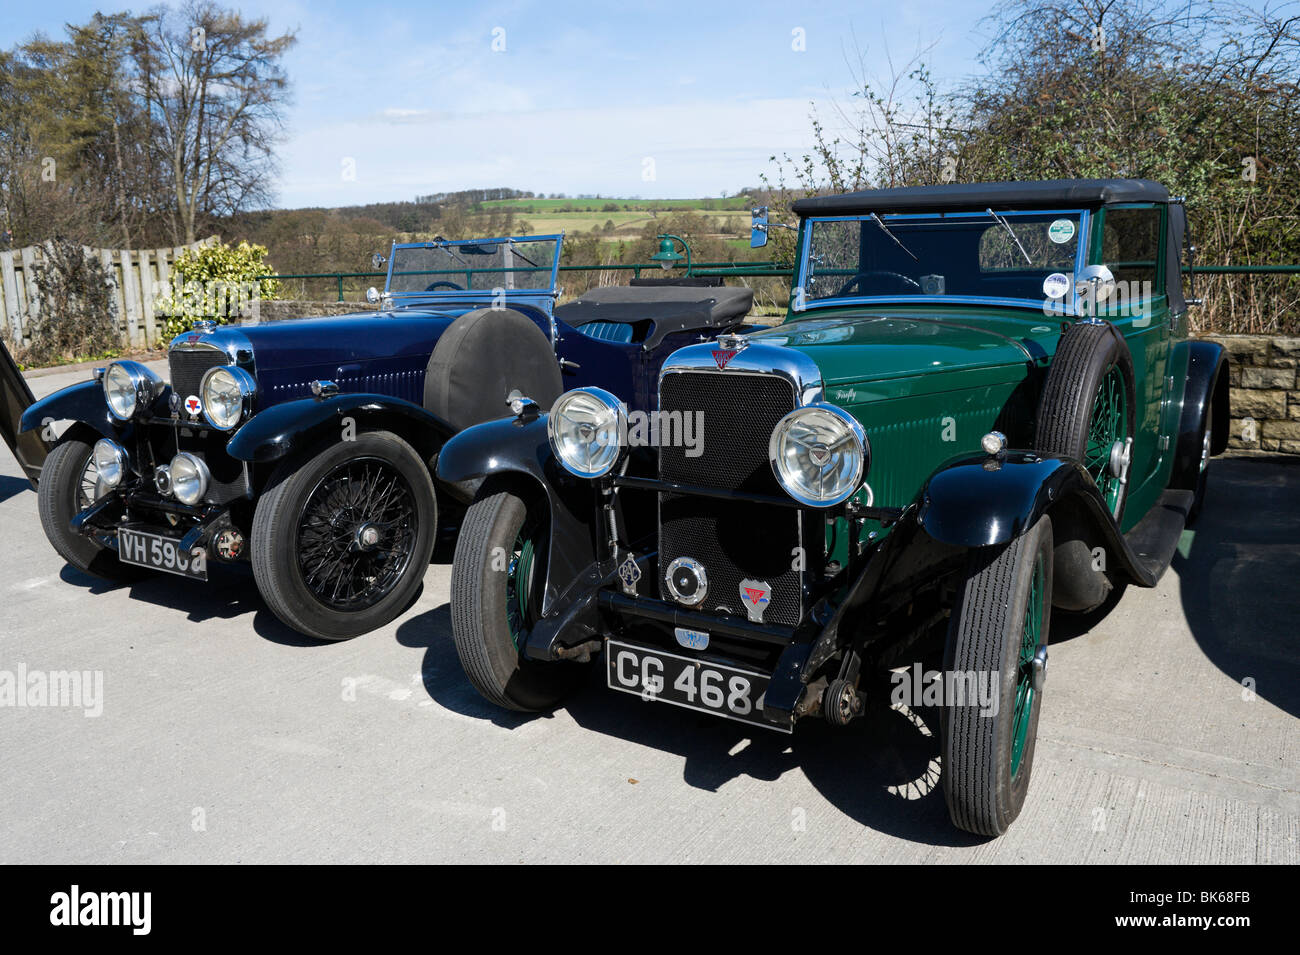 Classic Alvis cars in the Yorkshire Dales, England - Stock Image